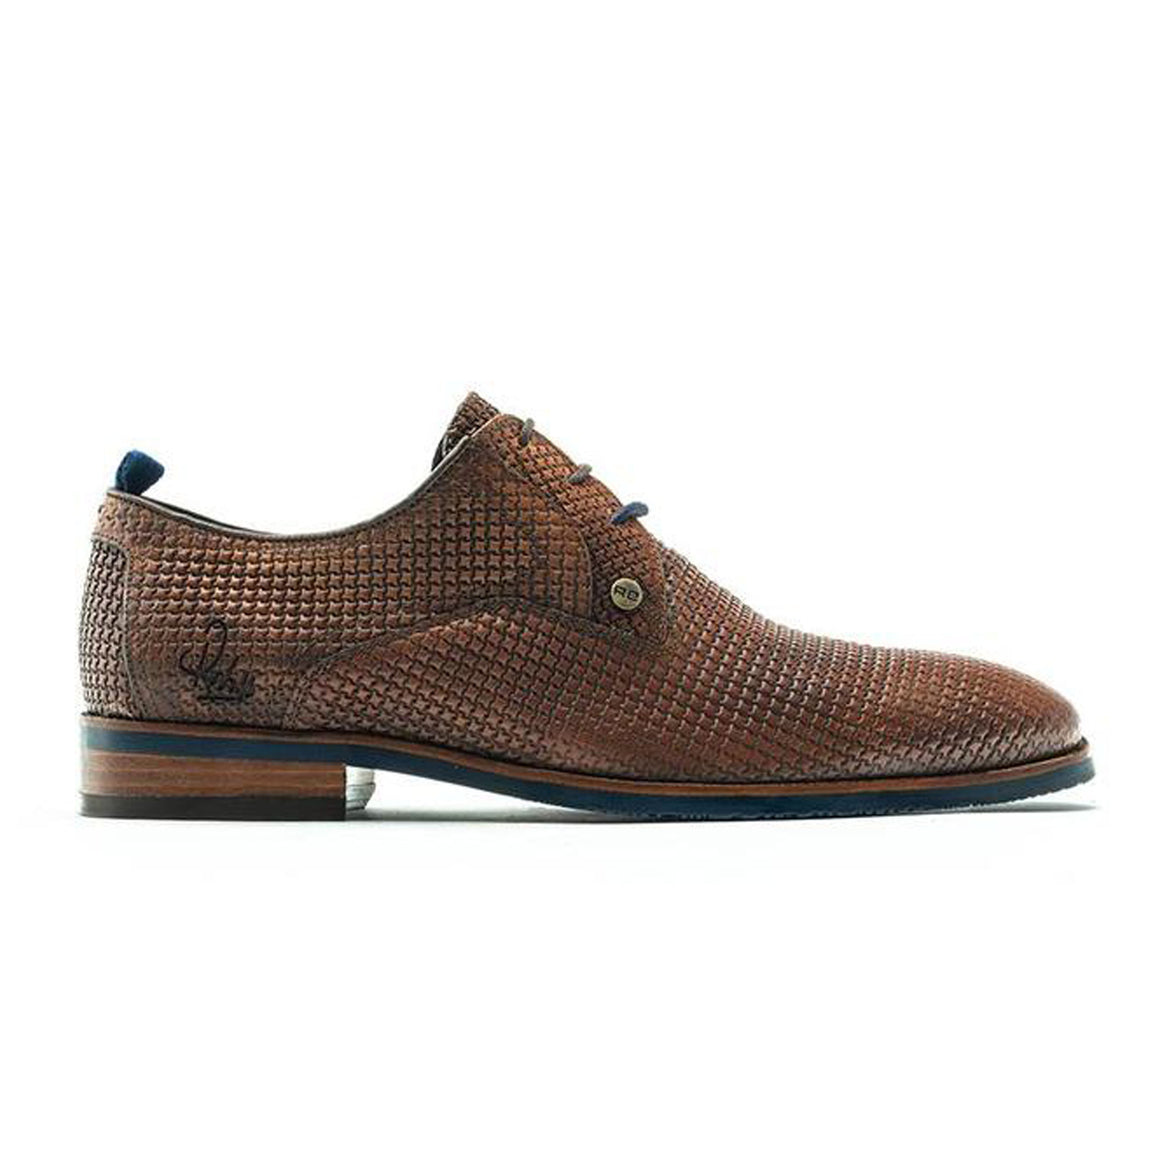 Falco Tile Shoe for Men in Brown